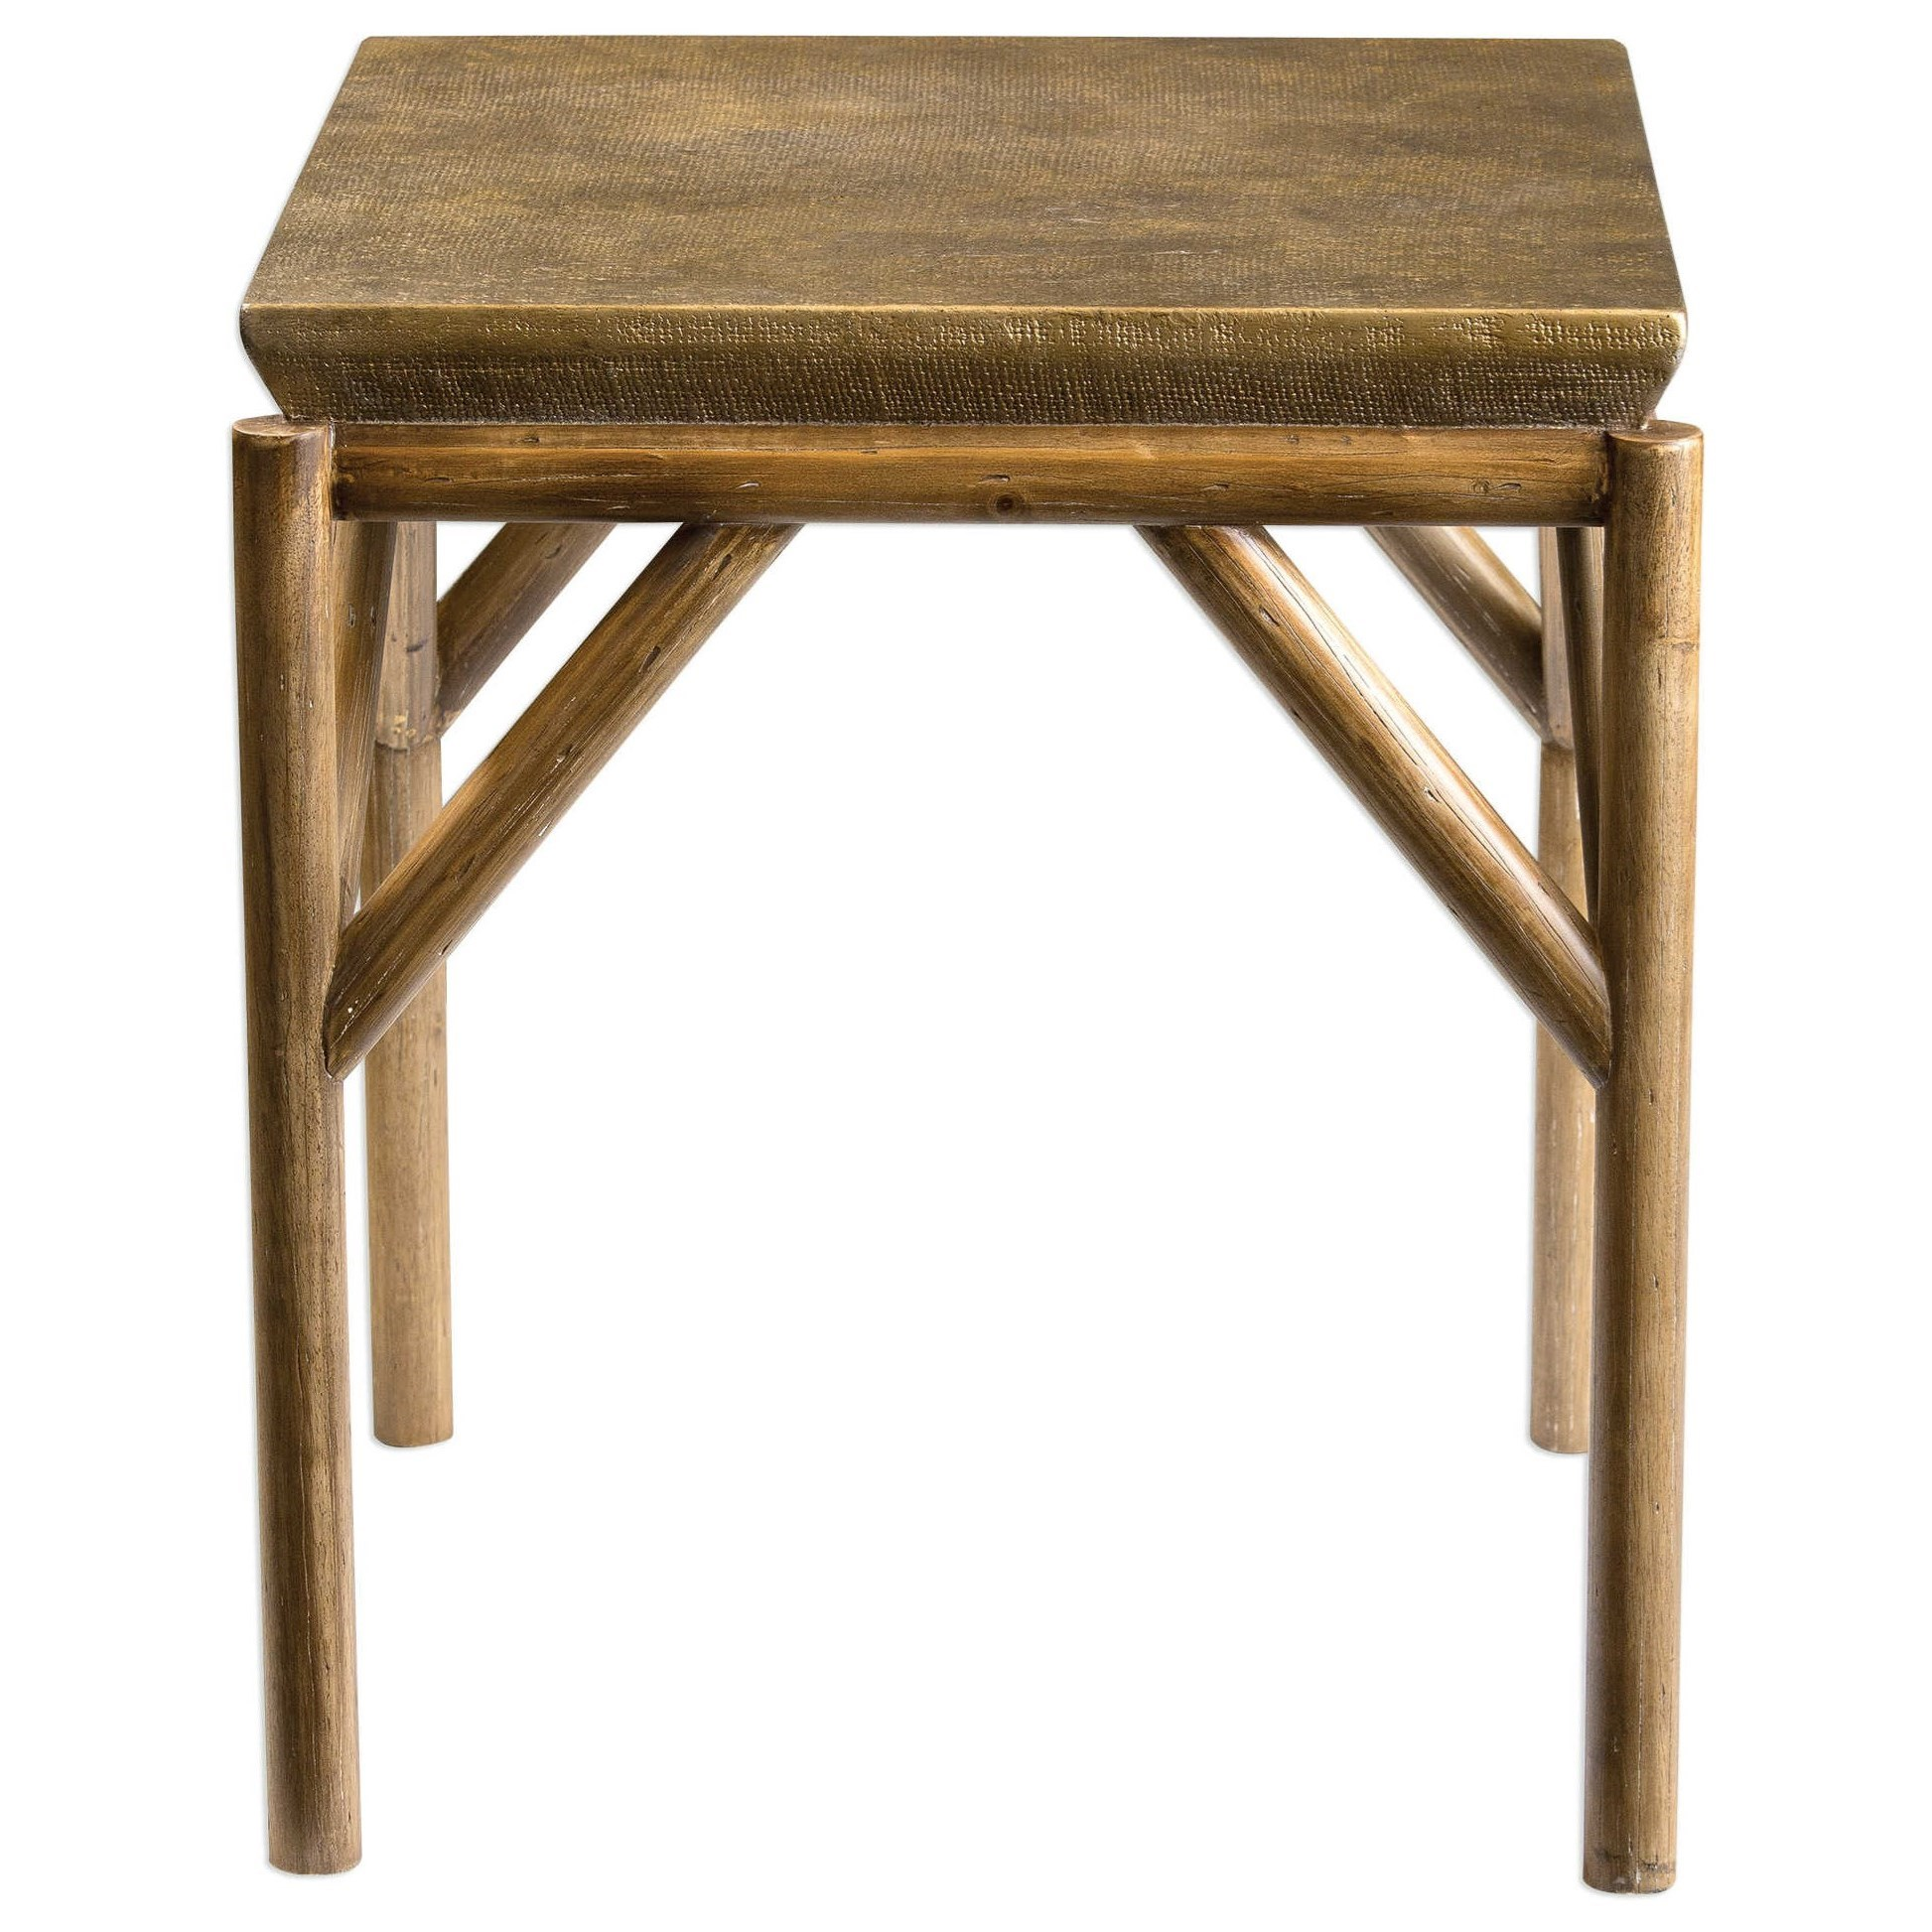 Uttermost Accent Furniture Kanti Metallic Champagne End Table - Item Number: 25962